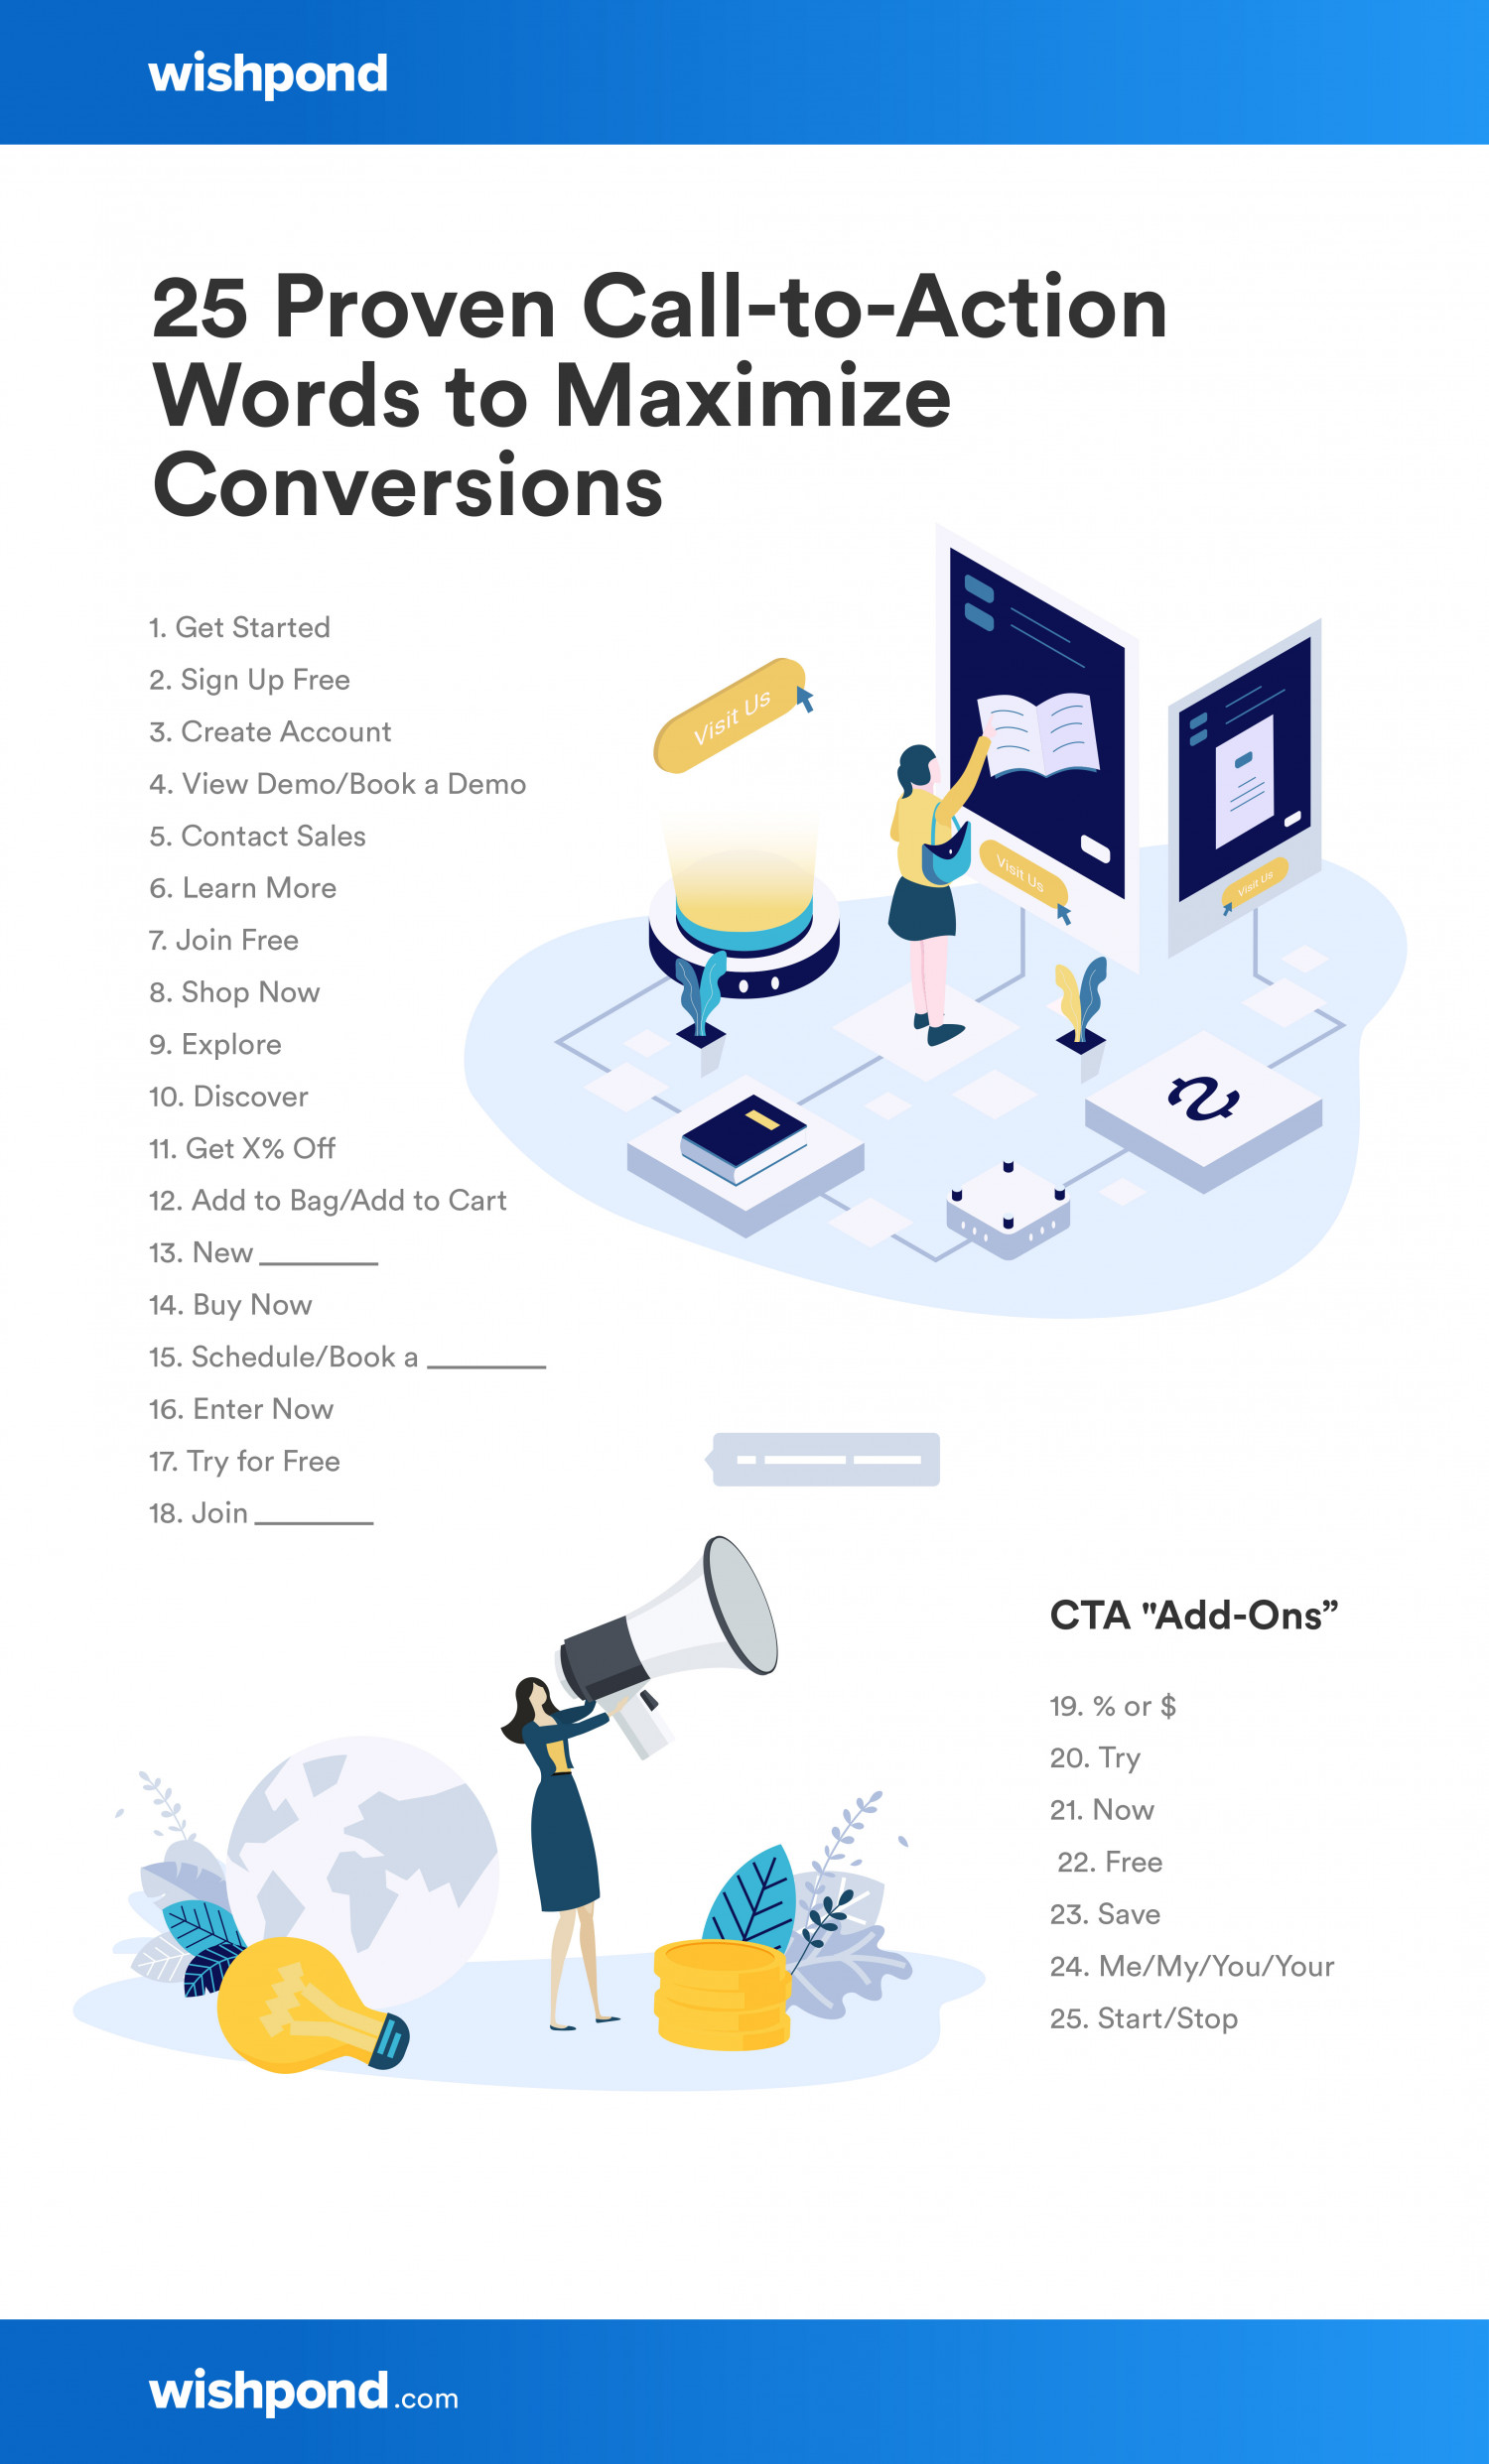 25 Proven Call-to-Action Words to Maximize Conversions Infographic